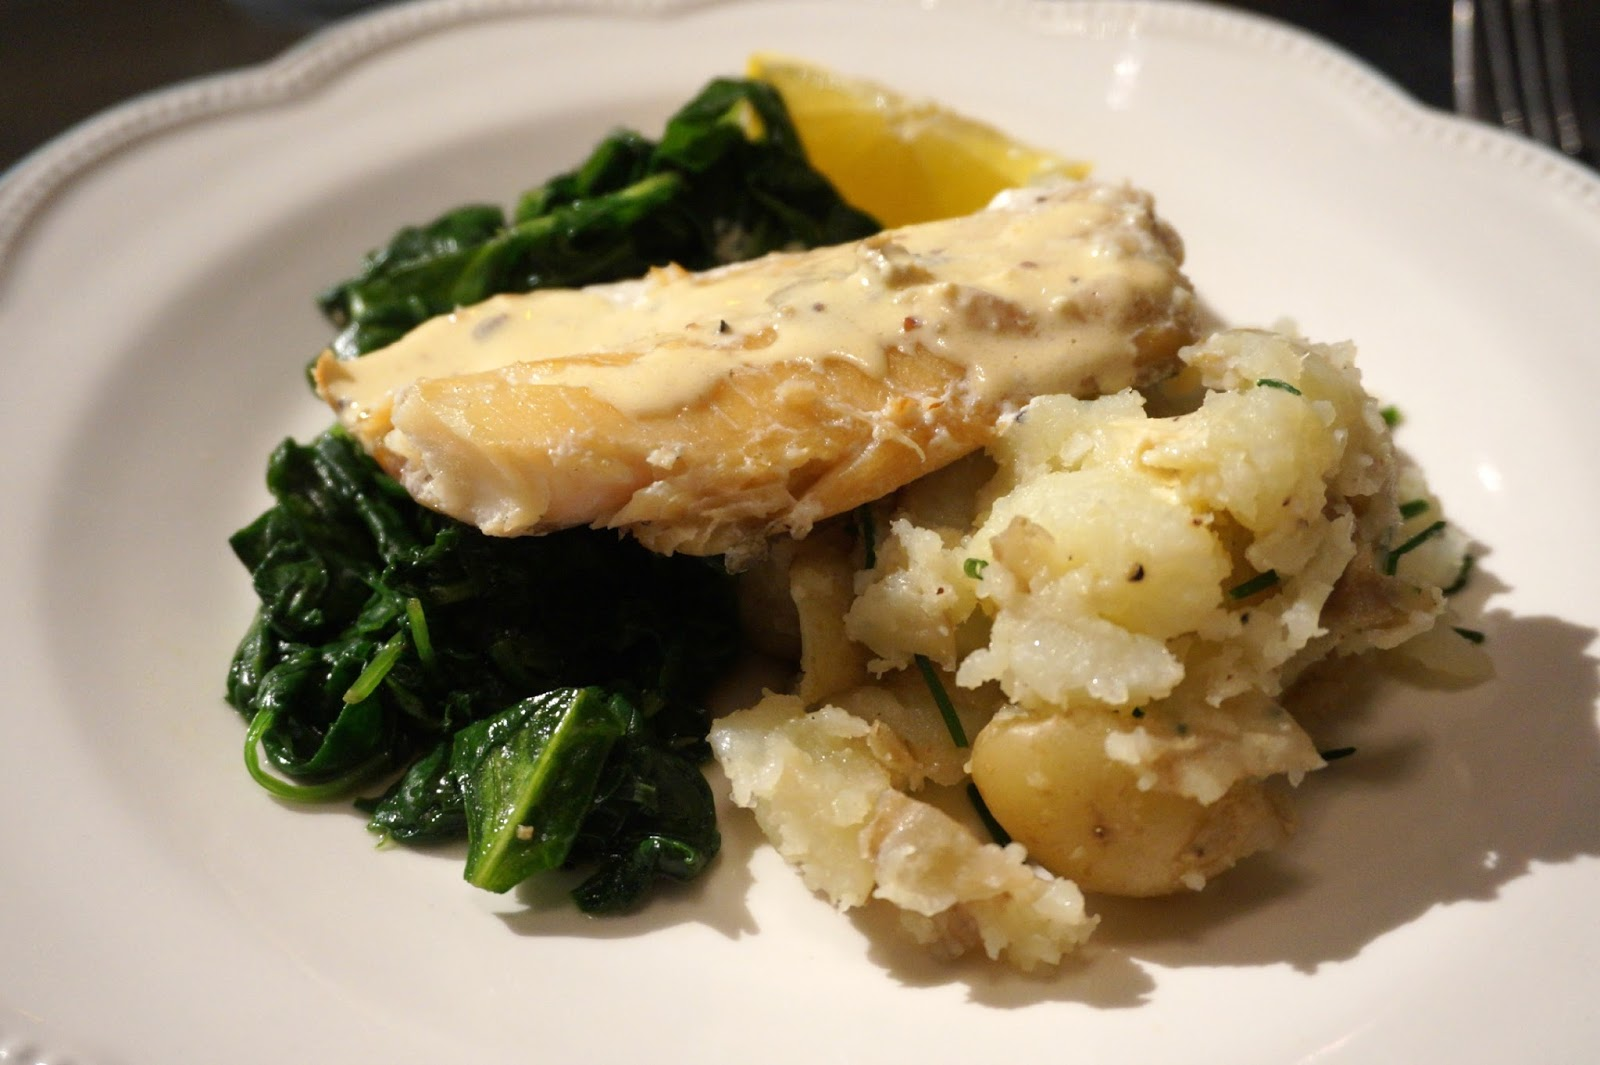 Cod and spinach in bowl